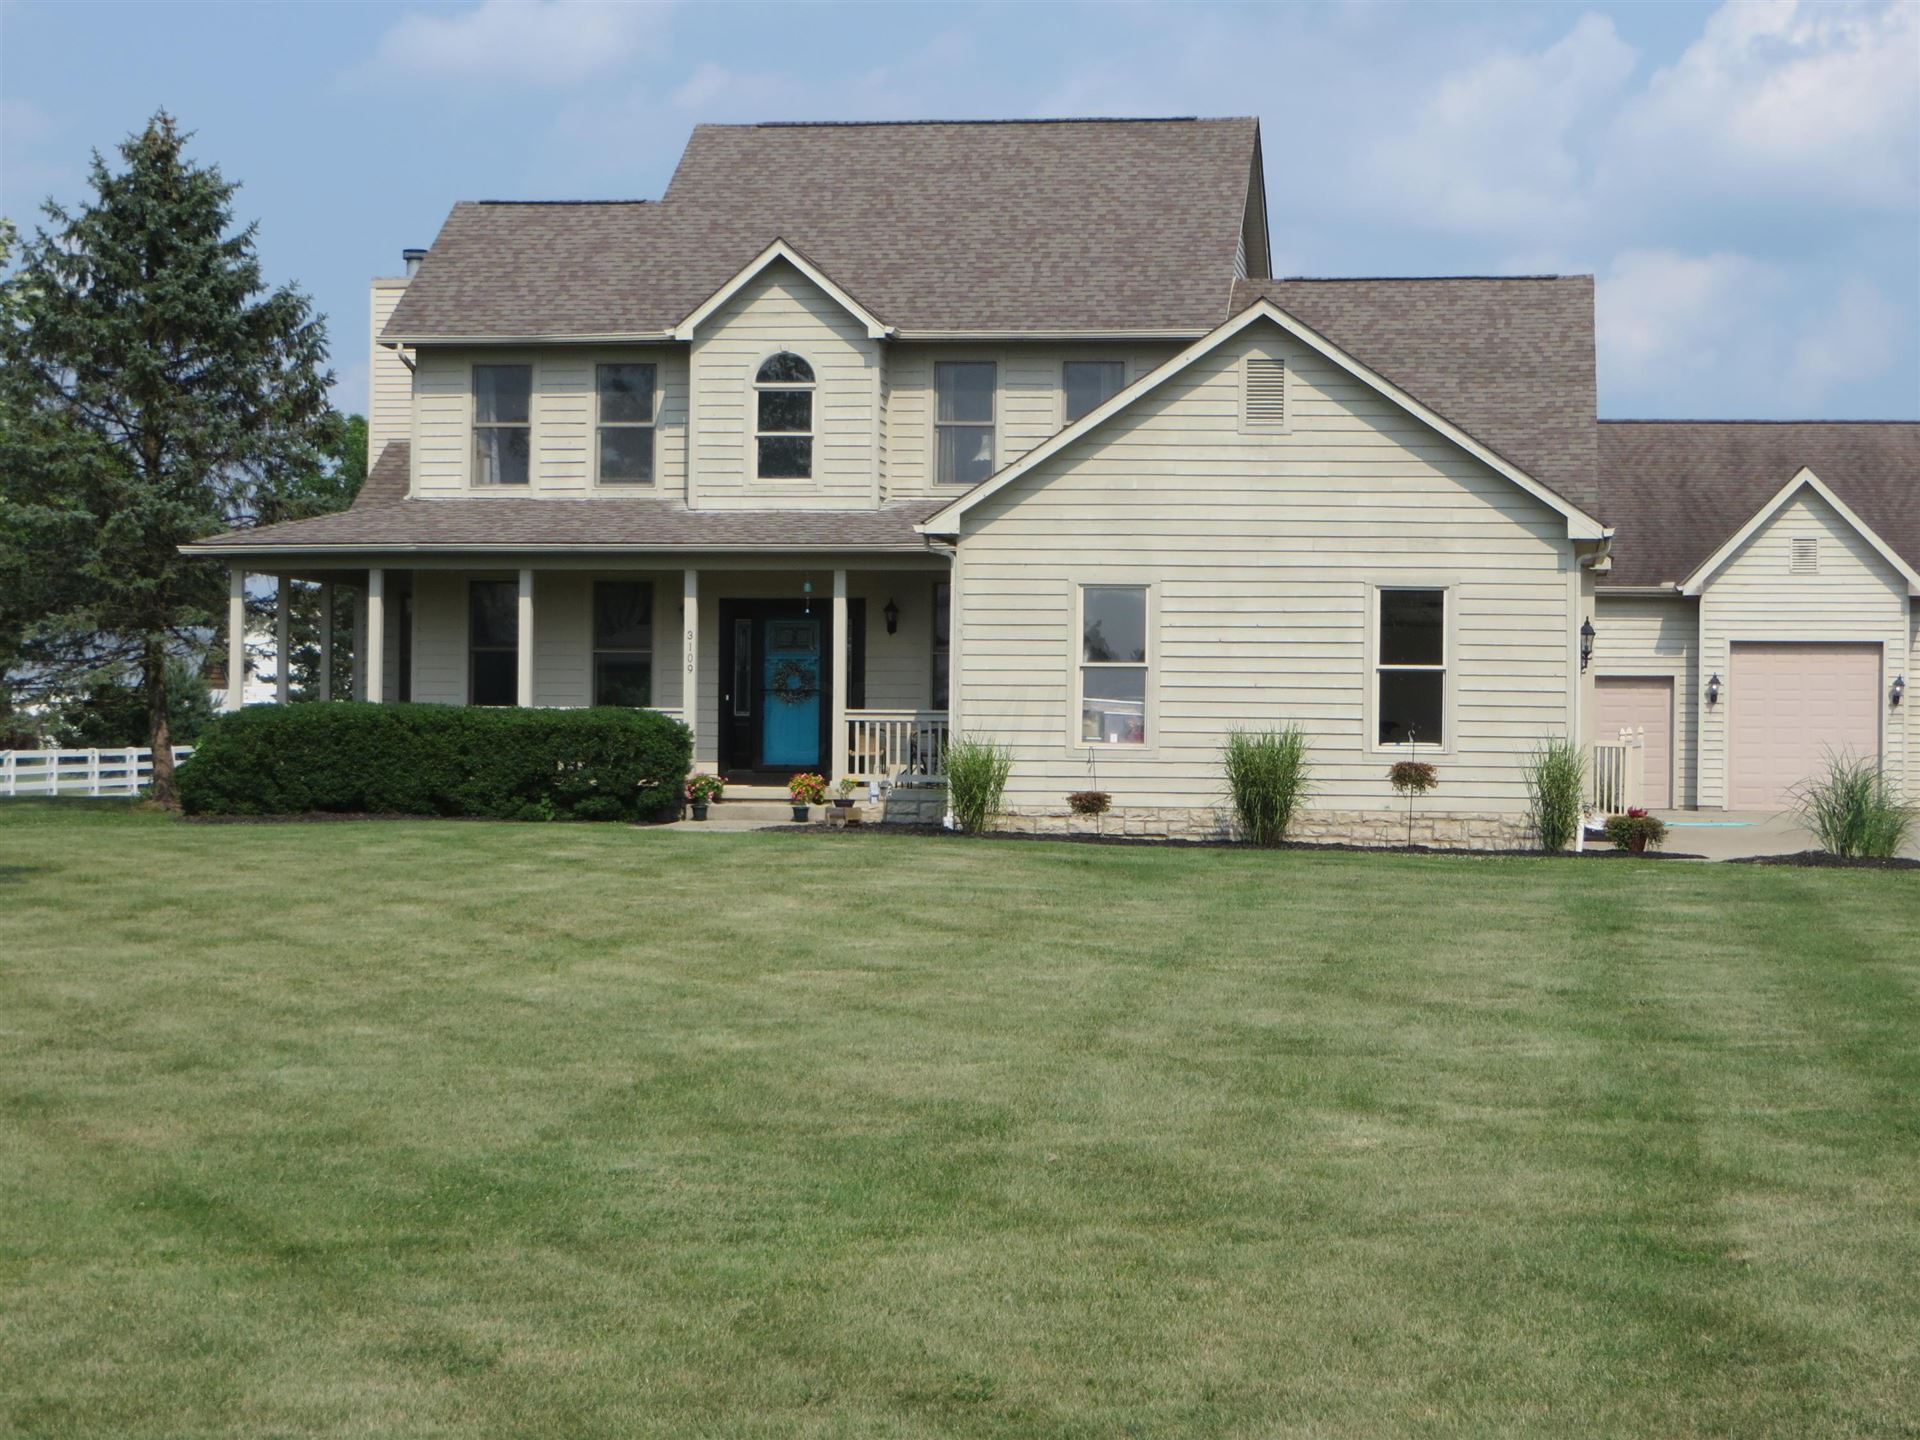 Photo of 3109 Ryan Meadow Place, Galena, OH 43021 (MLS # 221028786)